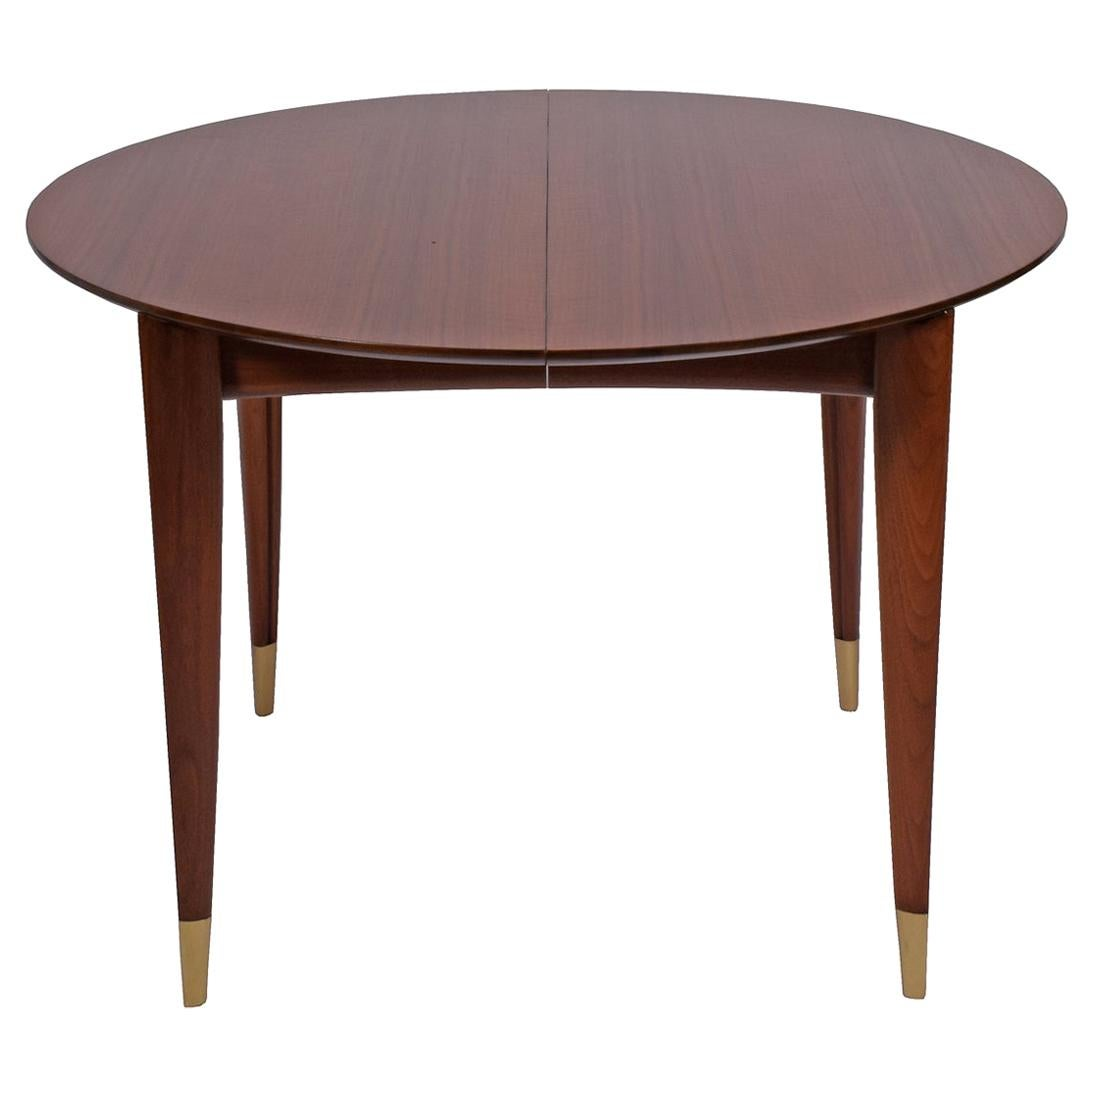 819c6d71448a8 Antique and Vintage Dining Room Tables - 9,613 For Sale at 1stdibs